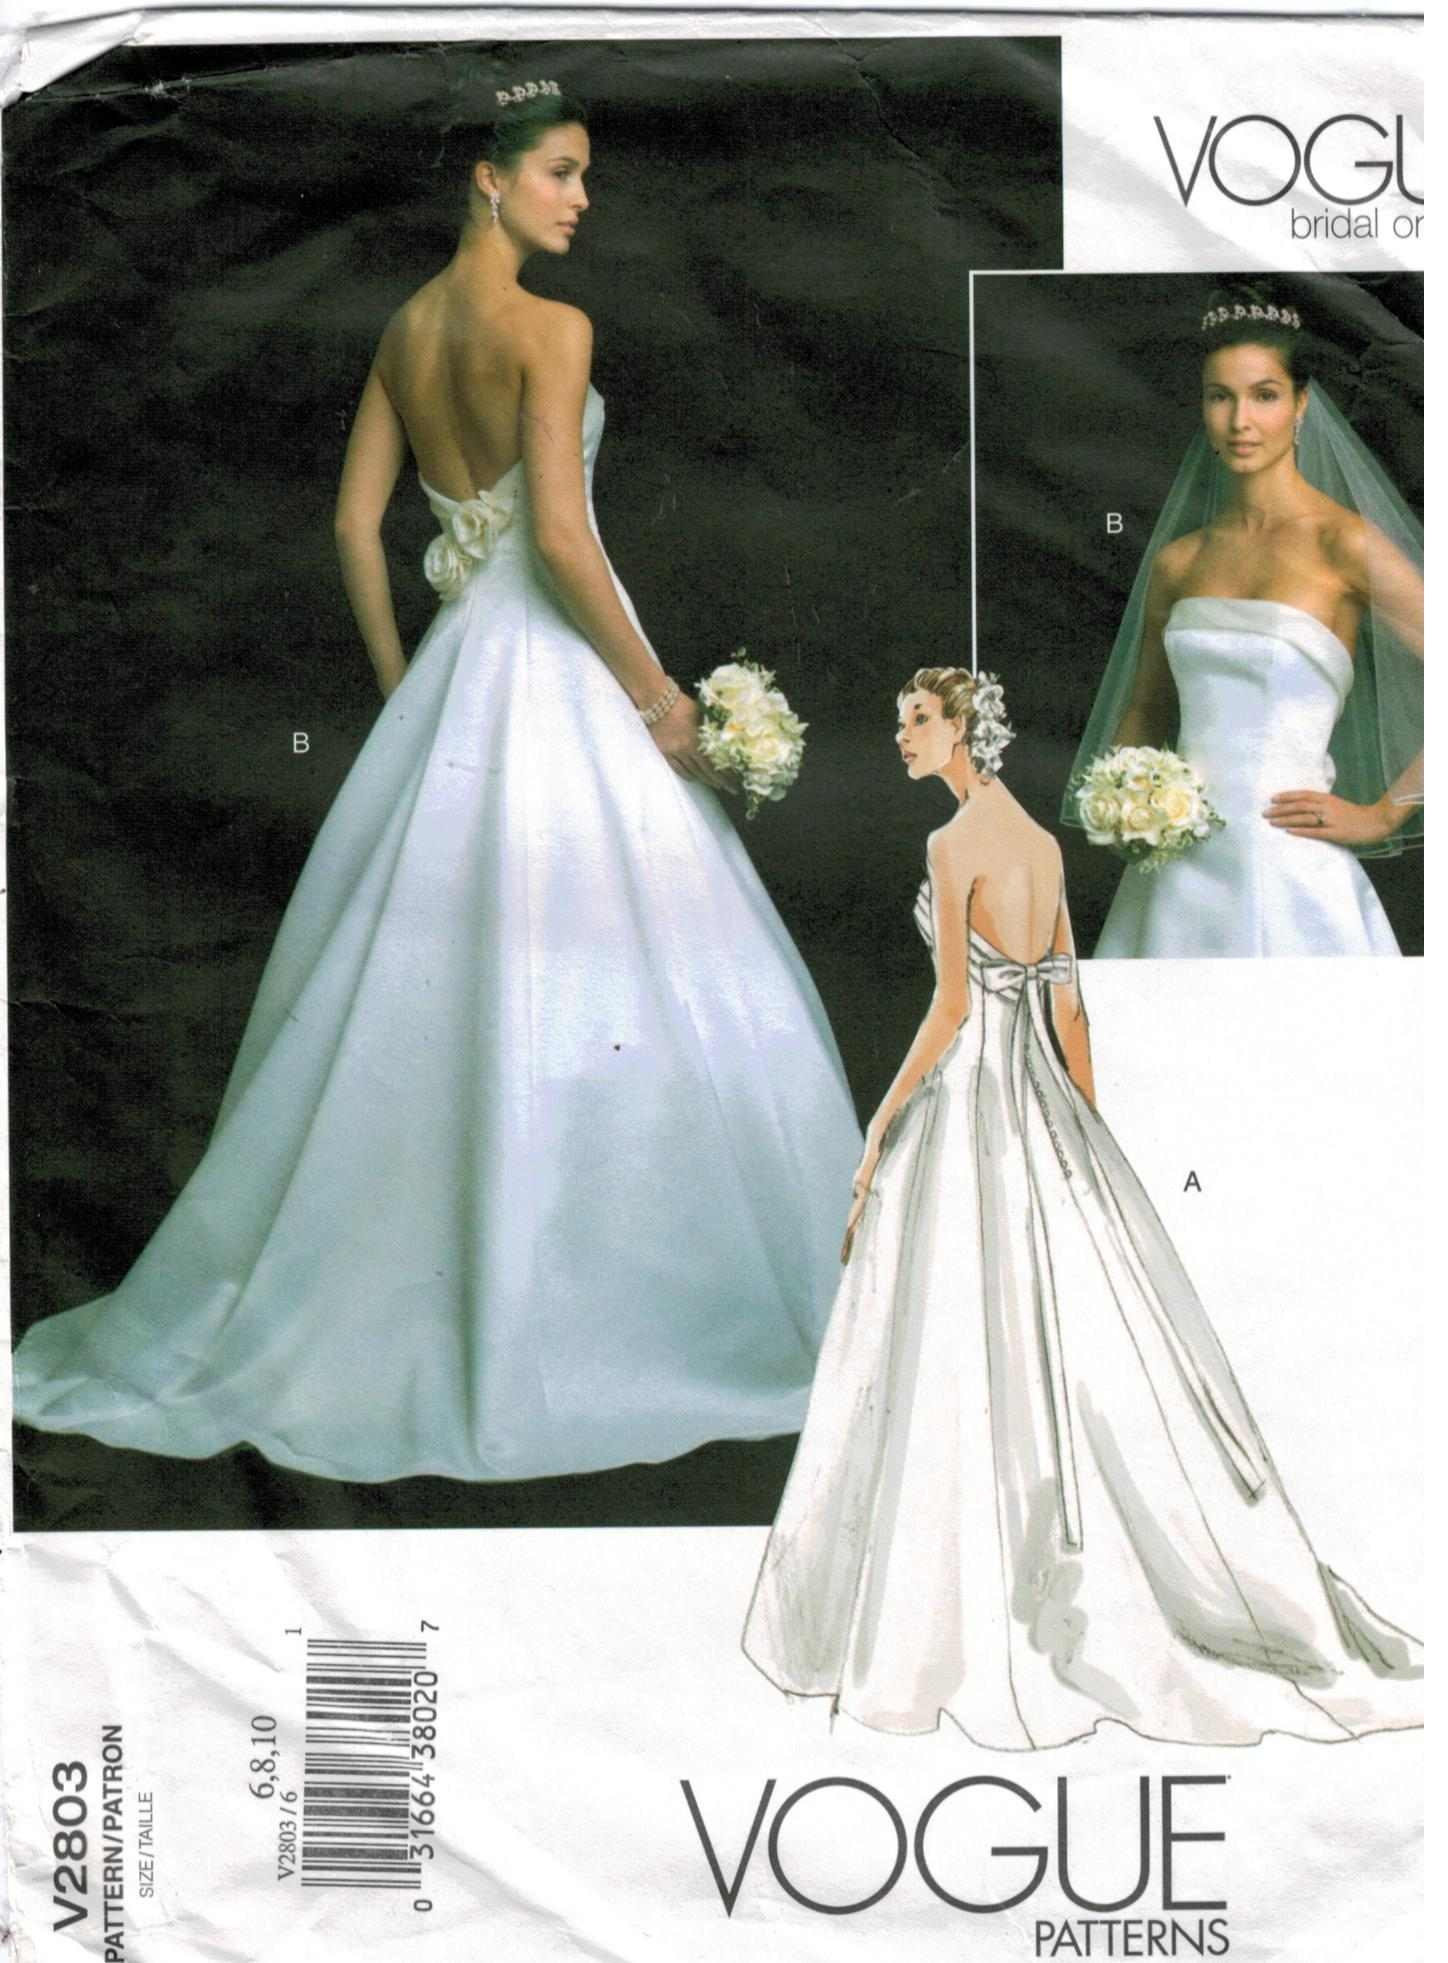 Vogue Pattern 2803 Bridal Wedding Bridesmaid Gown Original